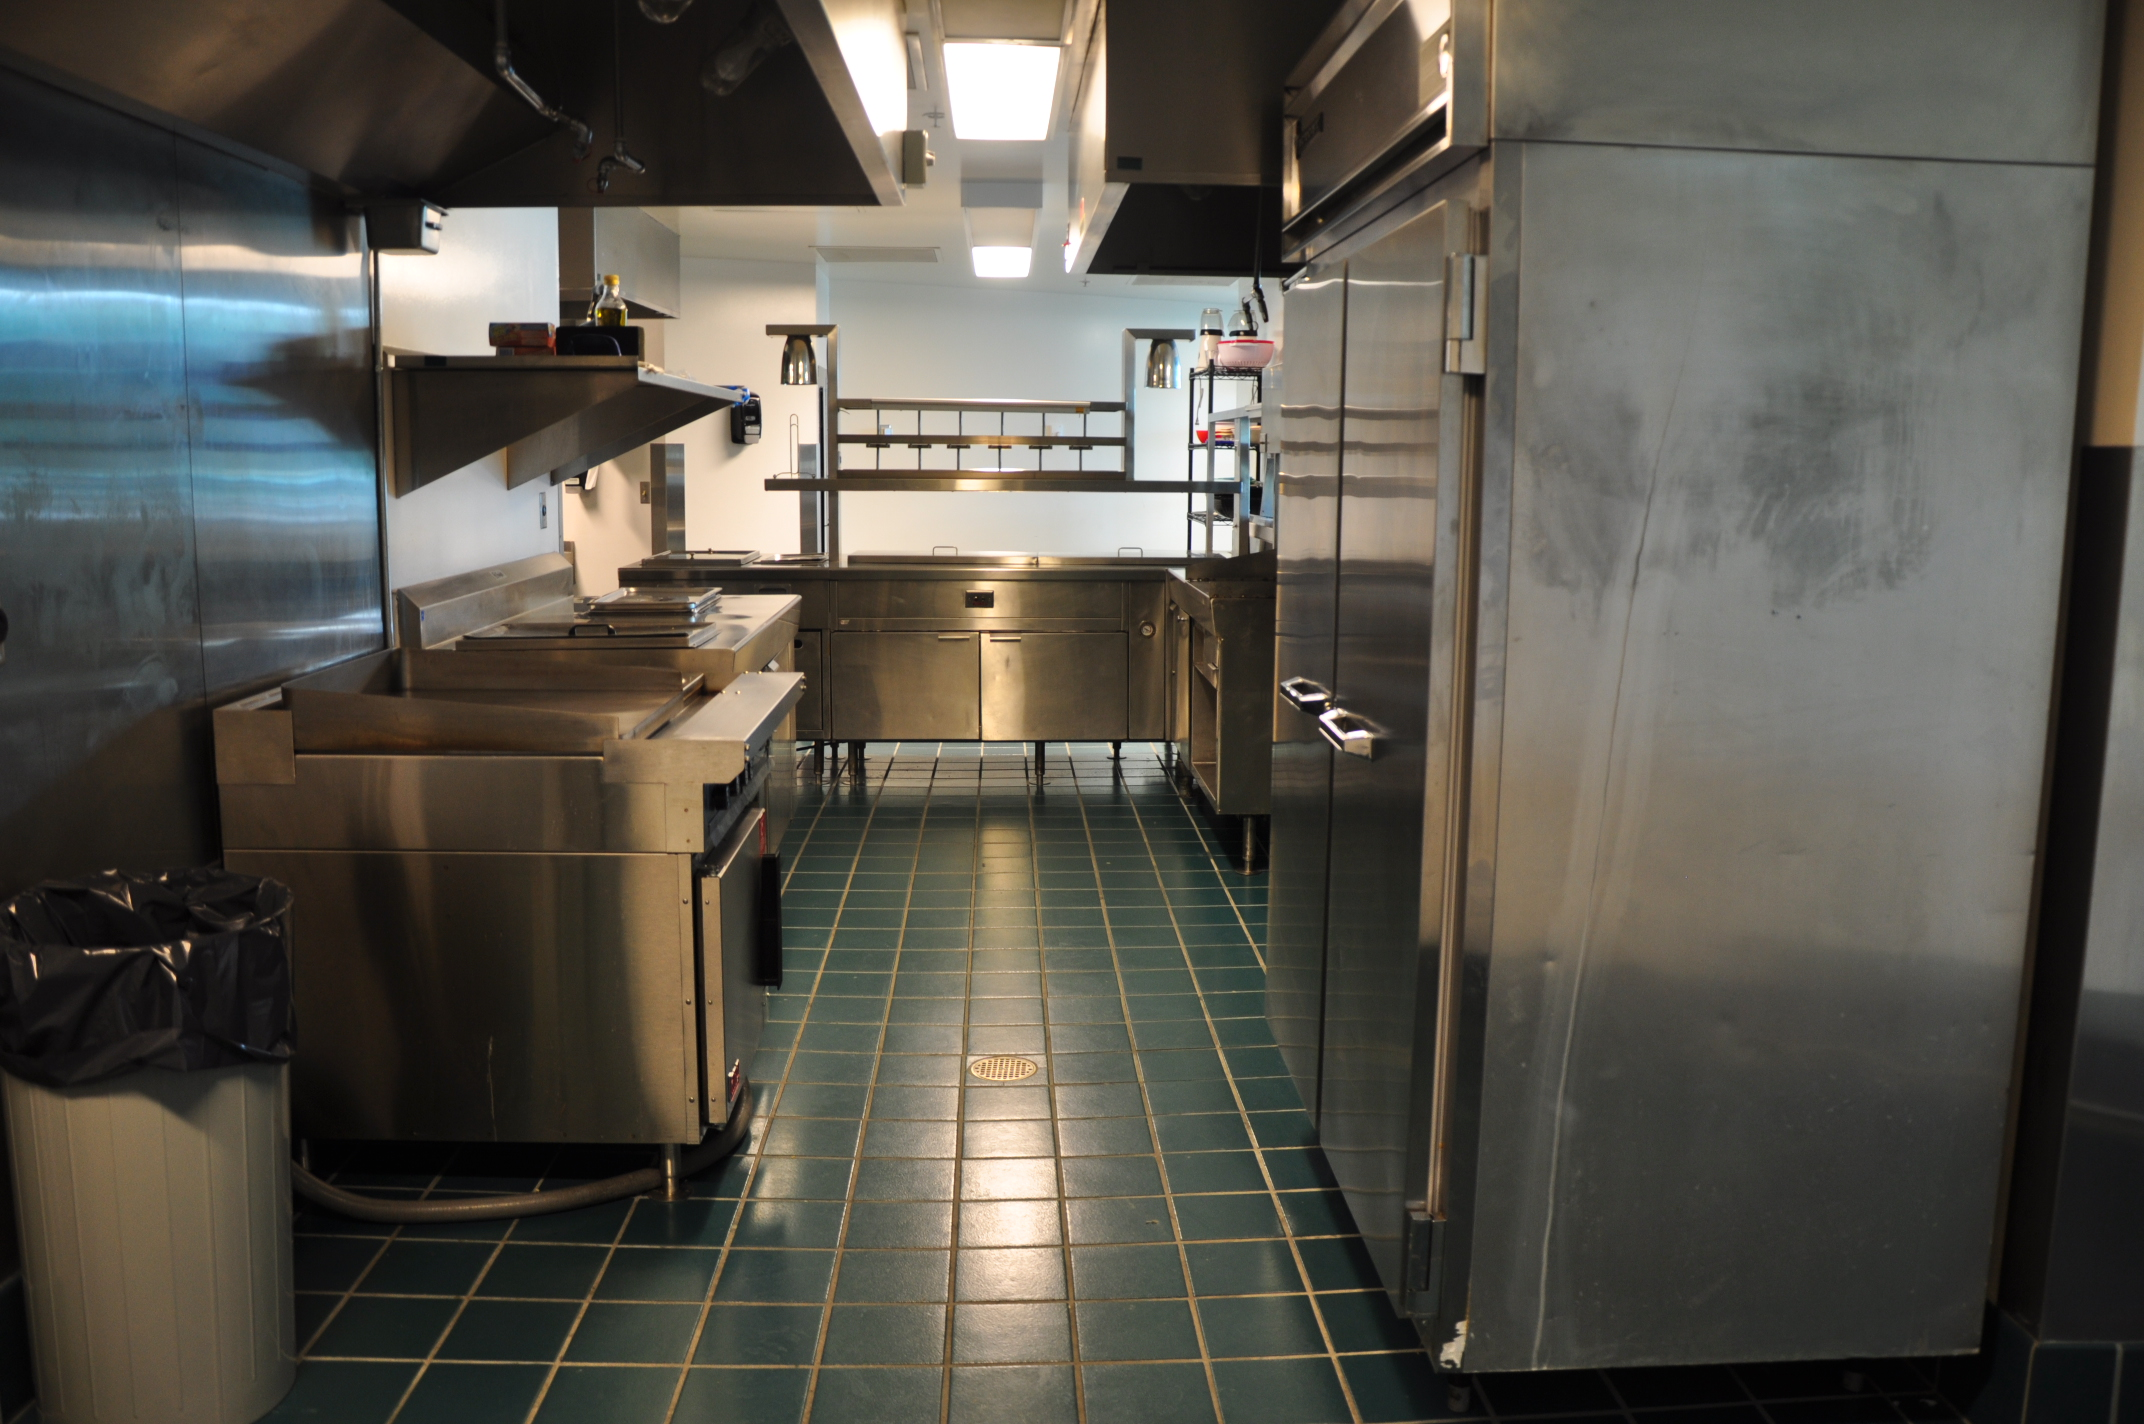 Kitchen cooking space